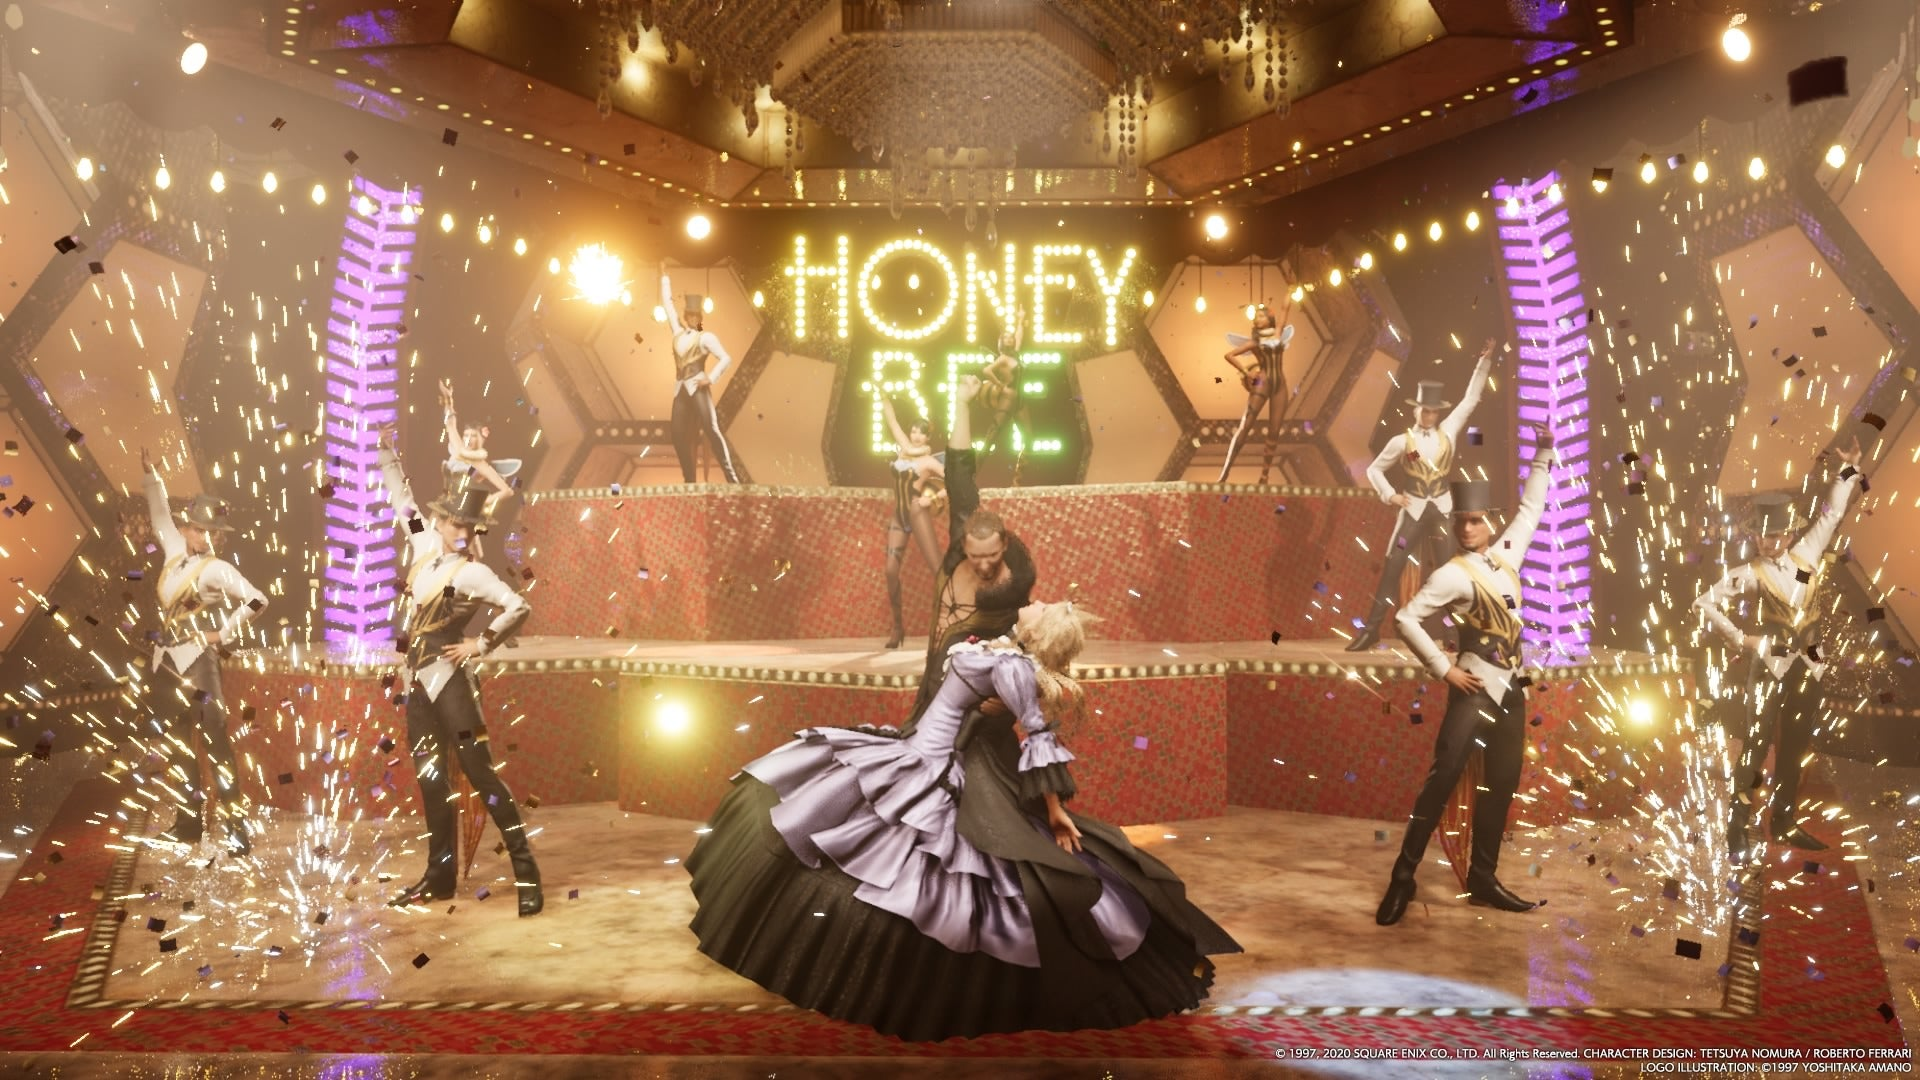 Final Fantasy VII Remake Gives Cloud's Honeybee Inn Makeover The Update It Needed